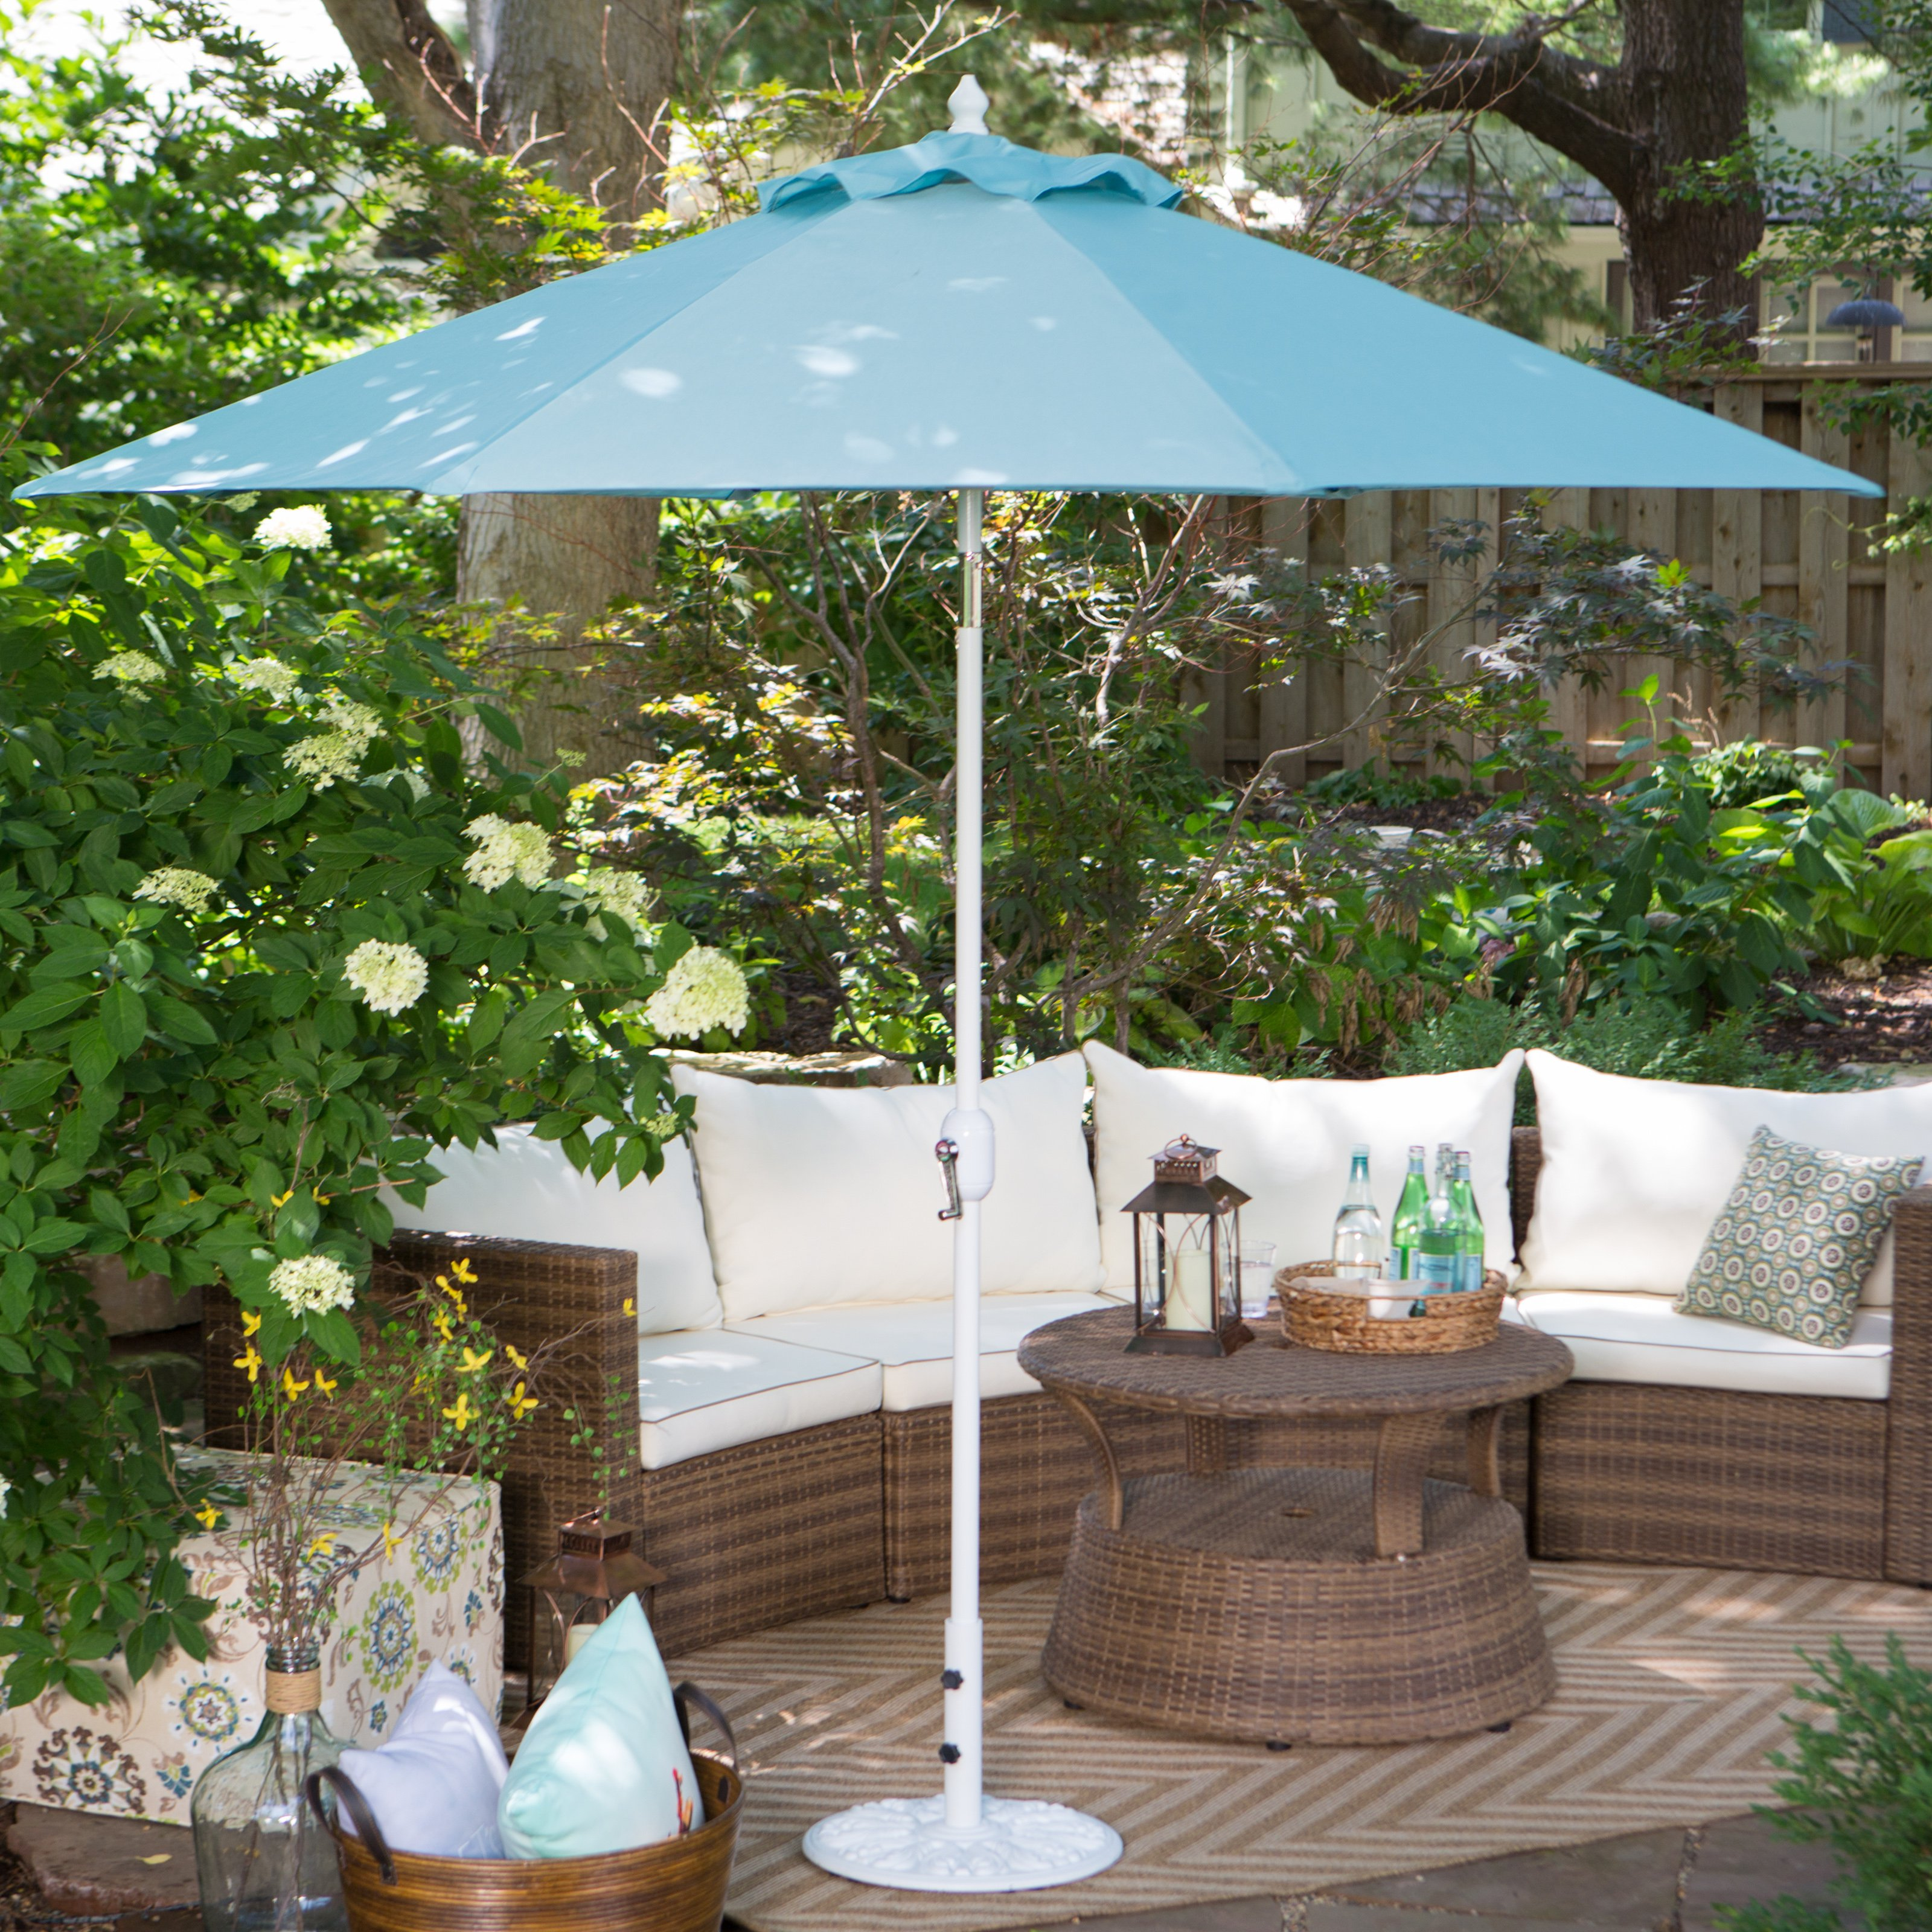 Galtech 9-ft. Aluminum Tilt Sunbrella Patio Umbrella